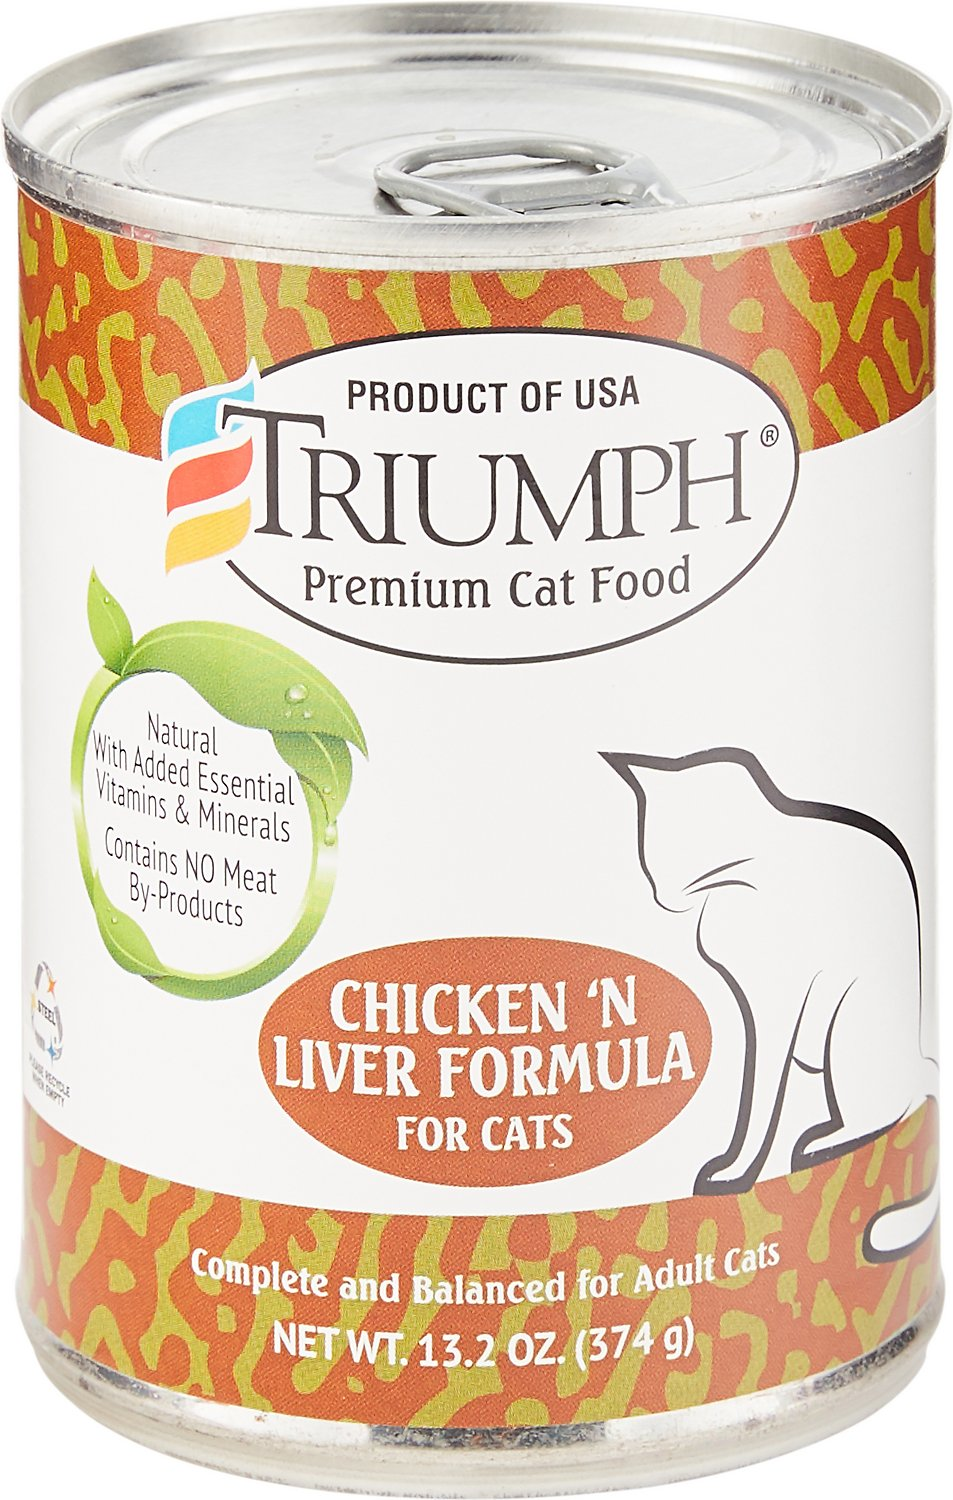 Triumph Chicken 'N Liver Formula Canned Cat Food, 13.2-oz